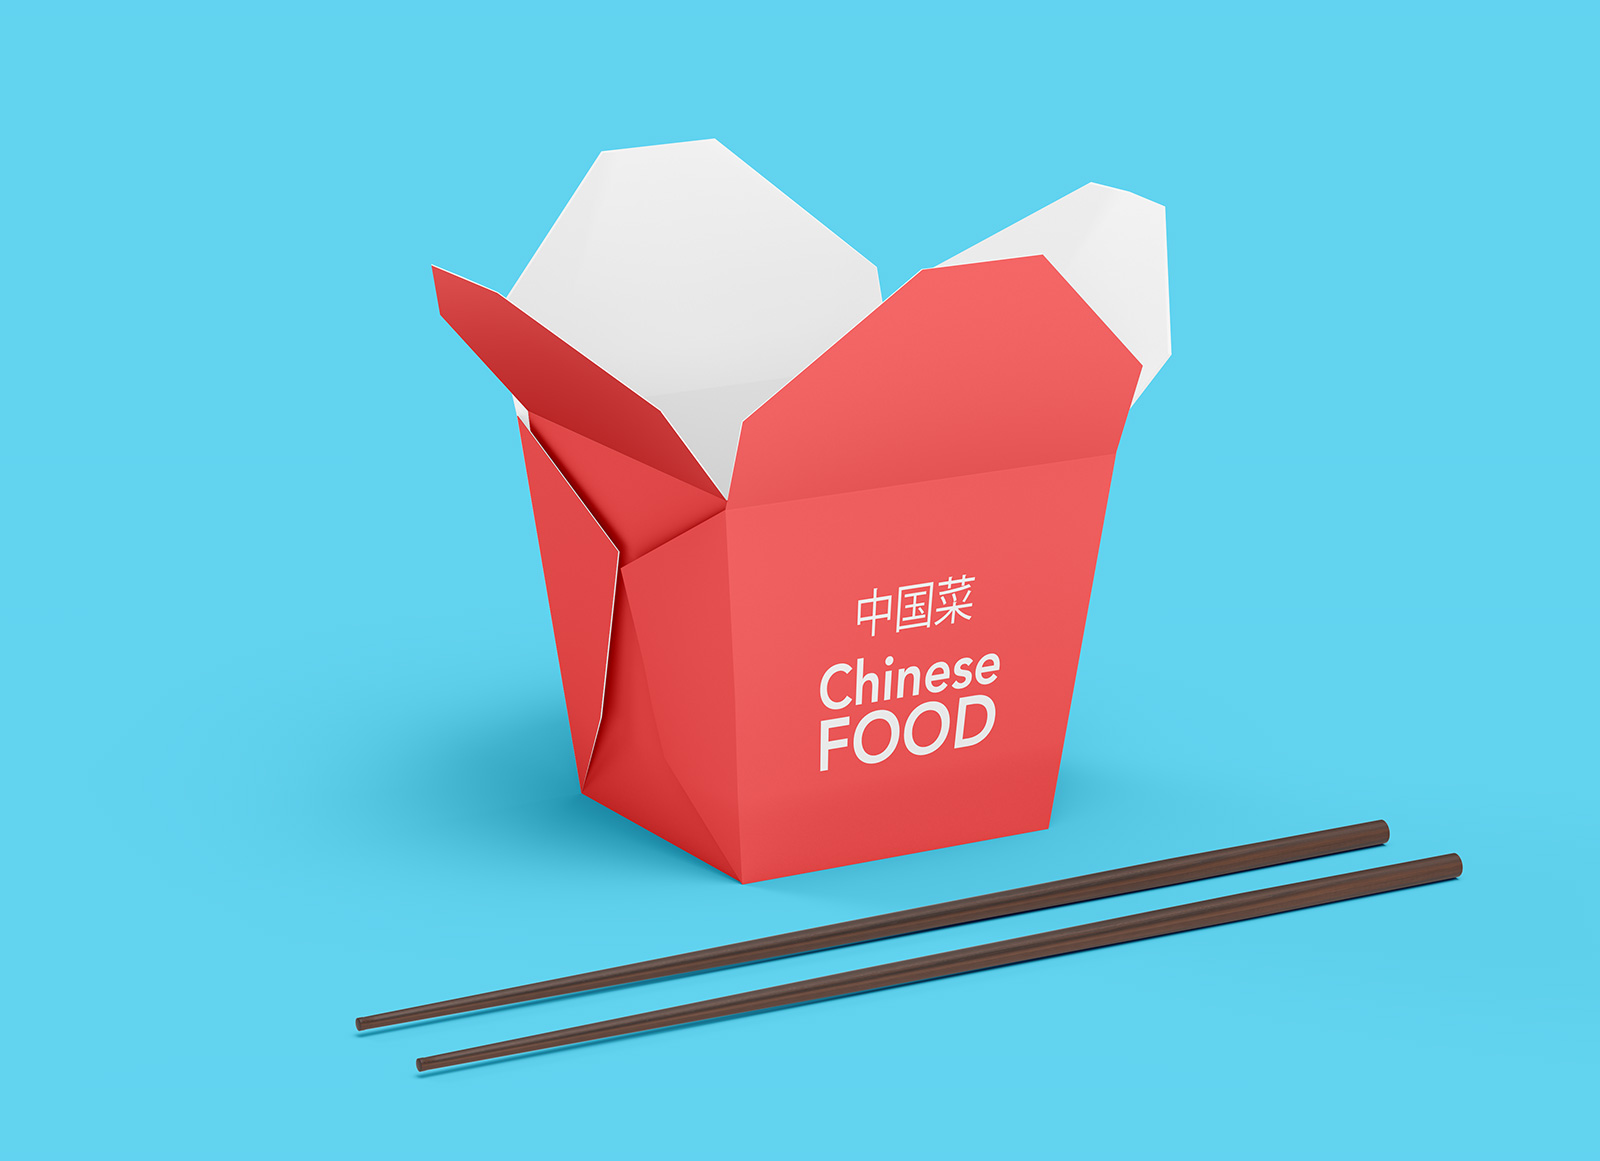 Free-Chinese-Food-Box-Takeout-Container-Mockup-PSD-Set